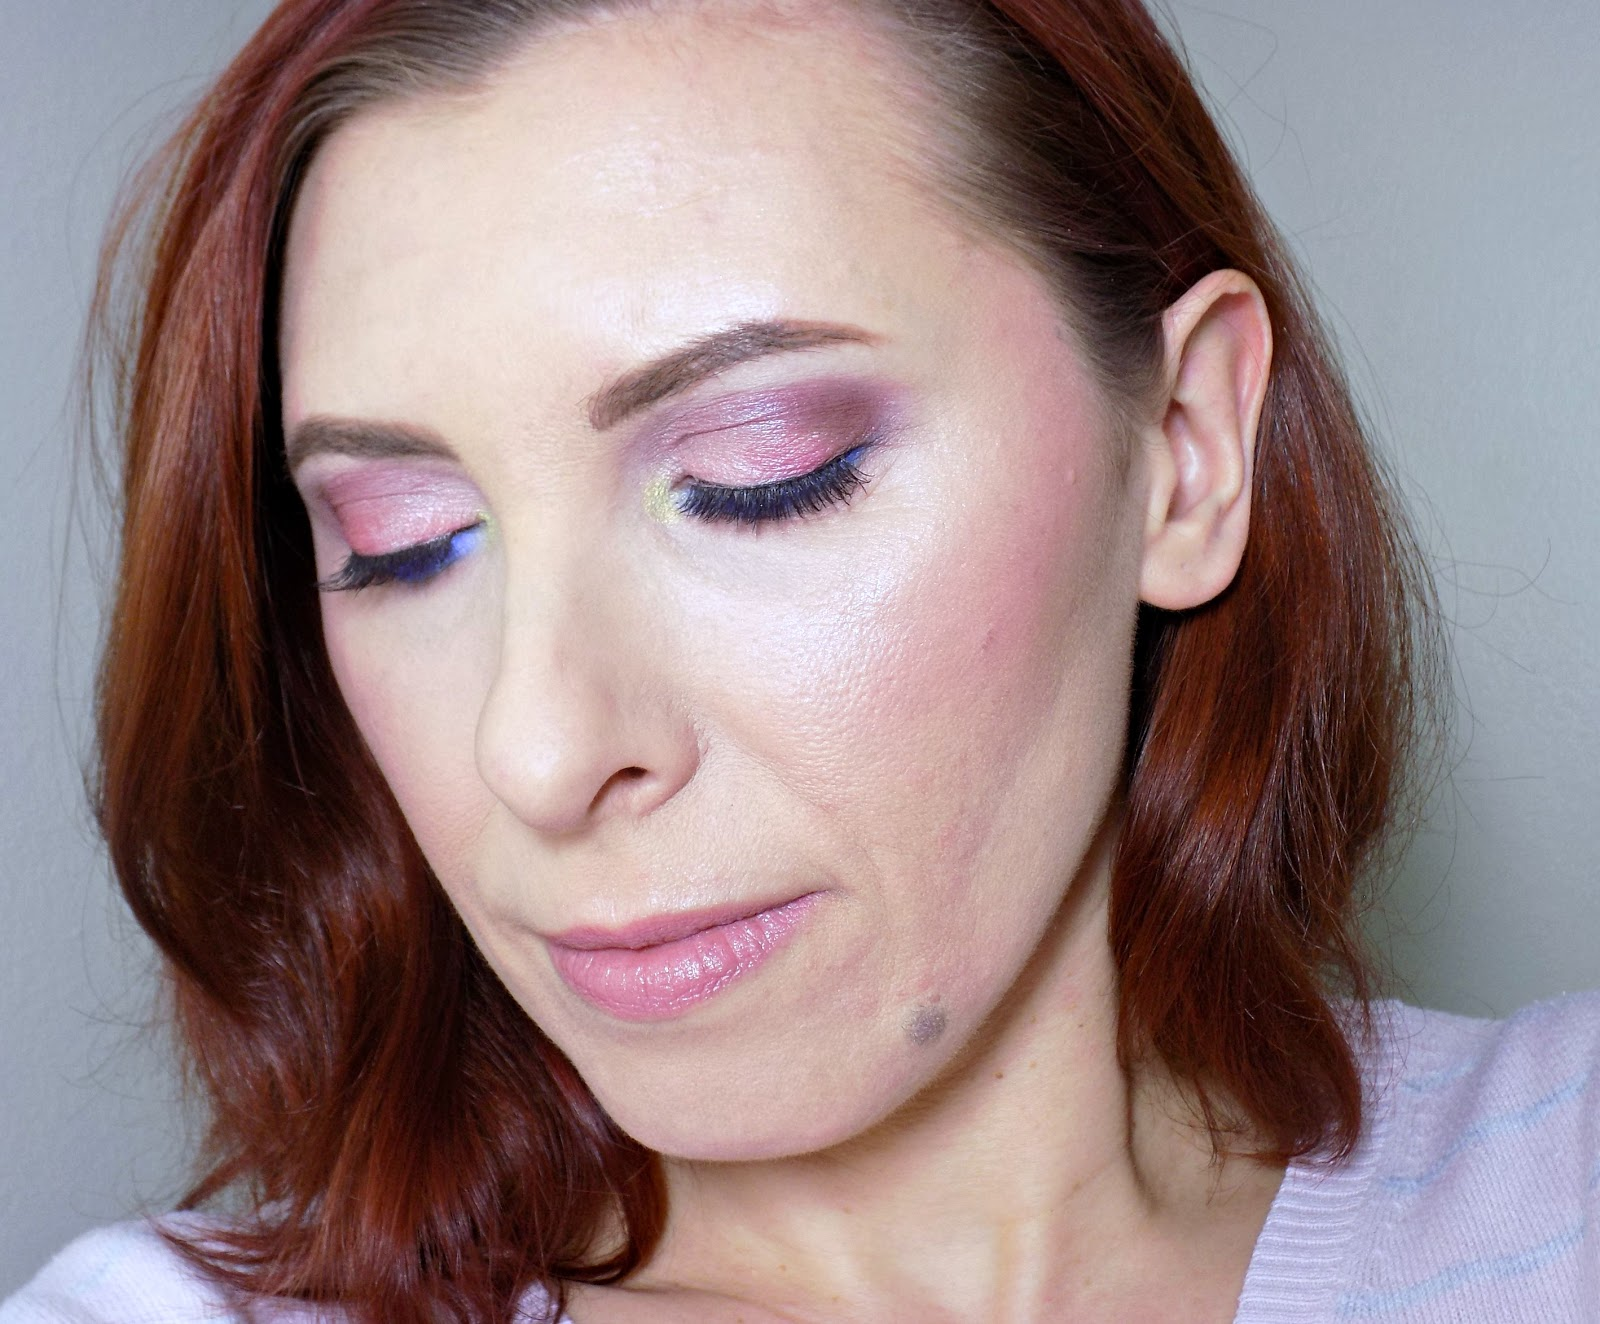 Makeup inspired by Cherry blossom tree